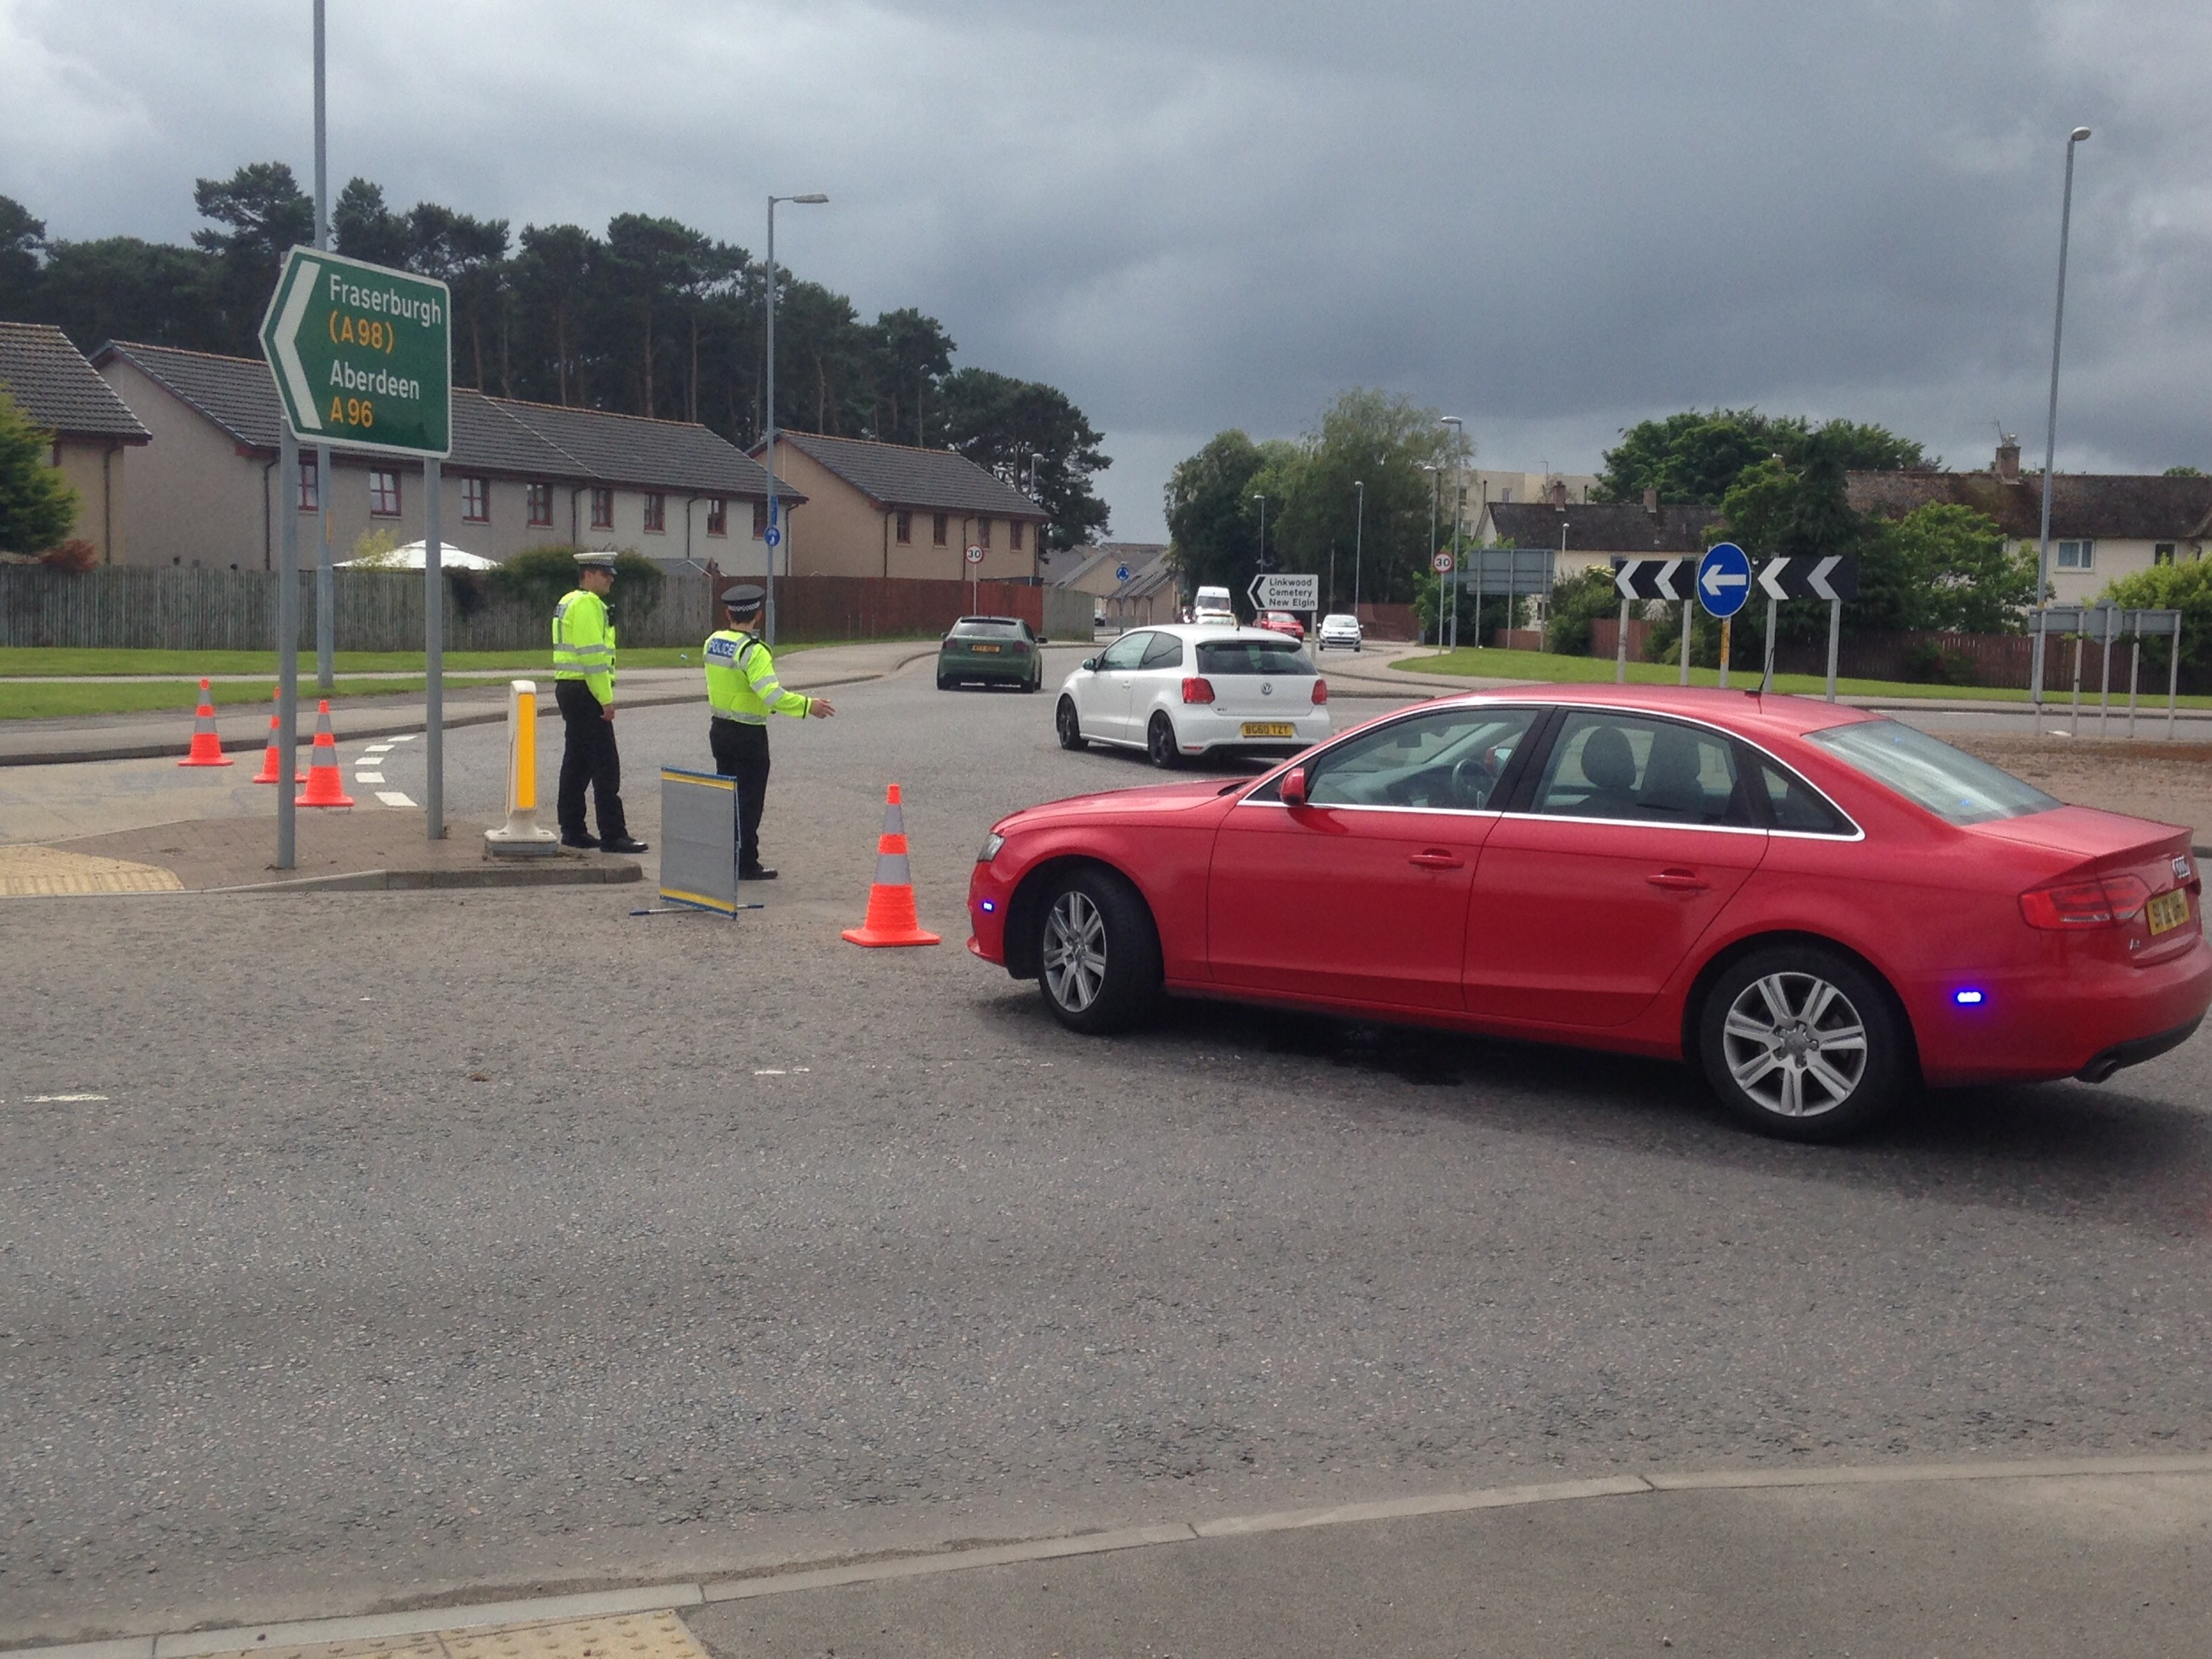 The scene of the leak on the A96